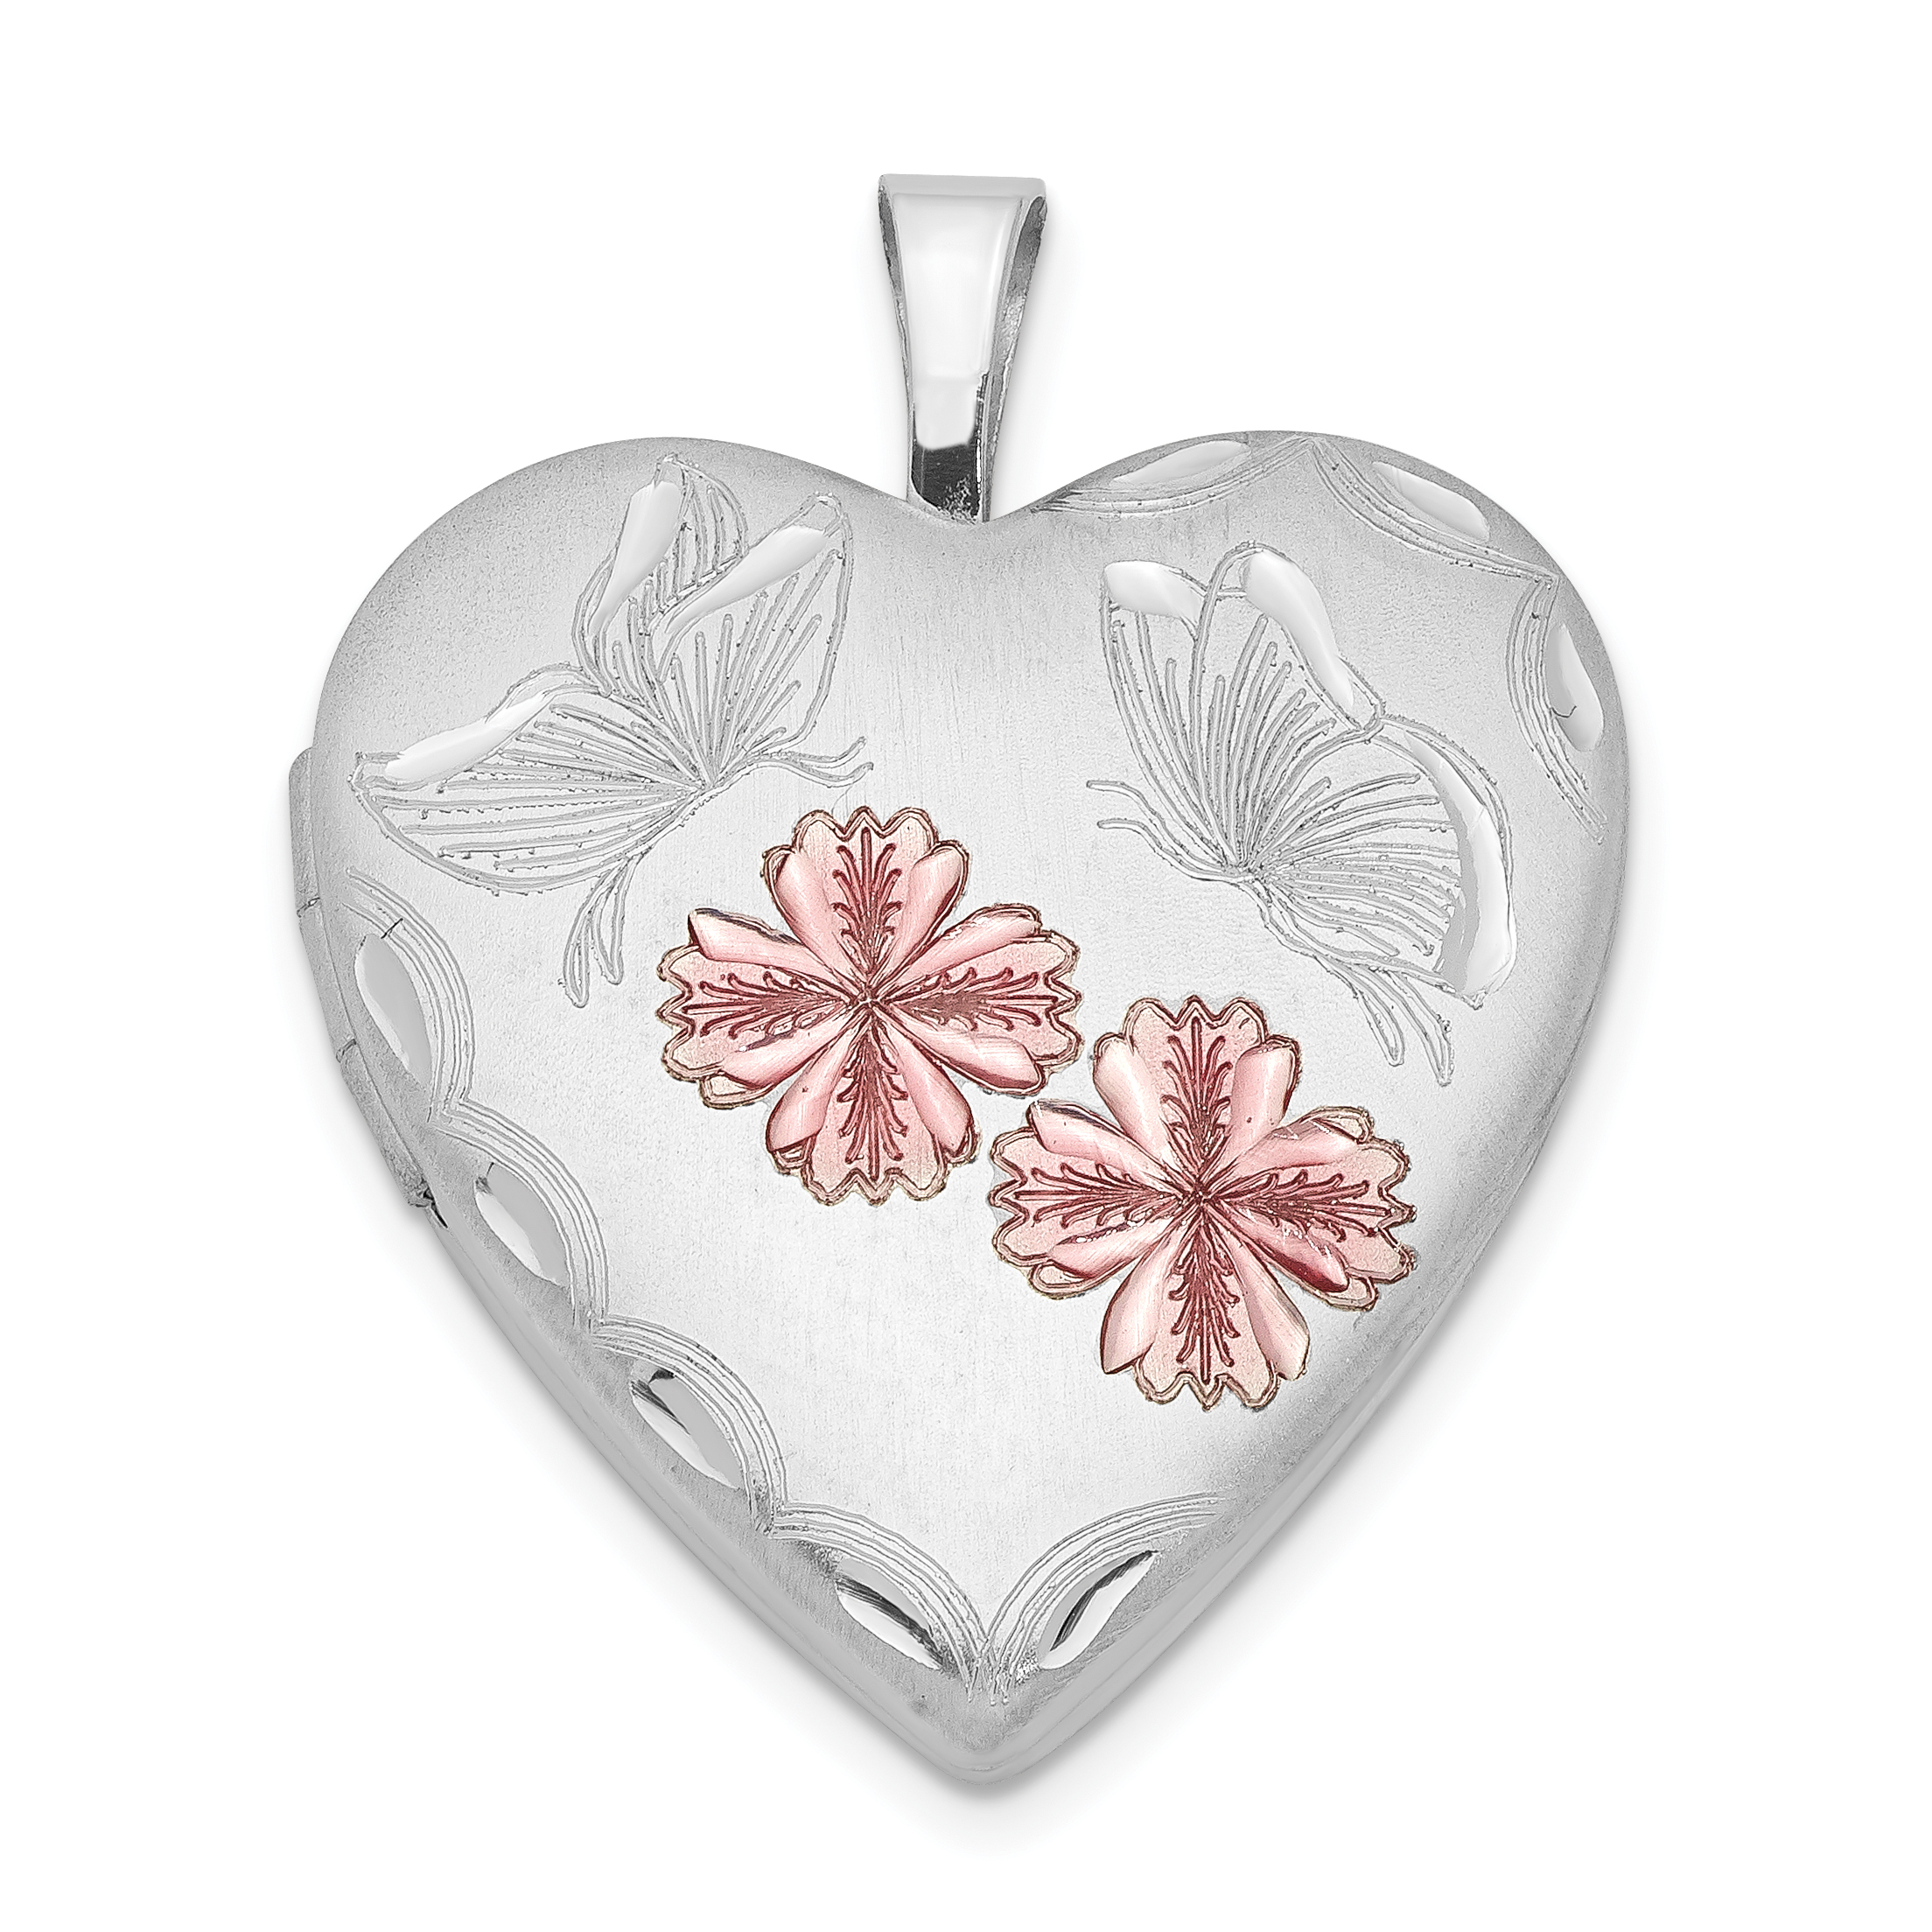 butterfly moodology simple locket a brilliant collection sparkles lockets out color create your gifting with to due living design crystals silver that of and its add cut pendant pop swarovski sentiments intricate